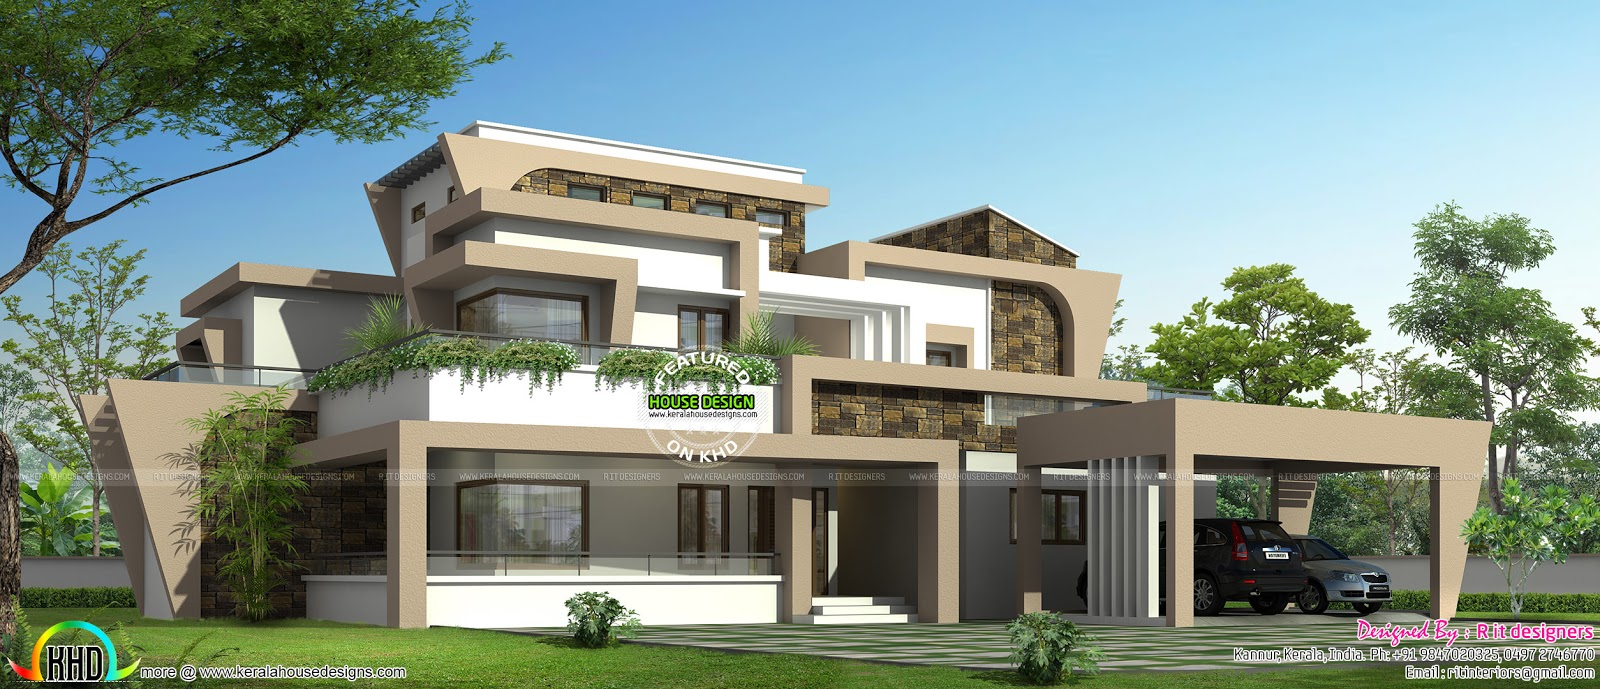 Unique modern home design in kerala kerala home design for Unusual home plans